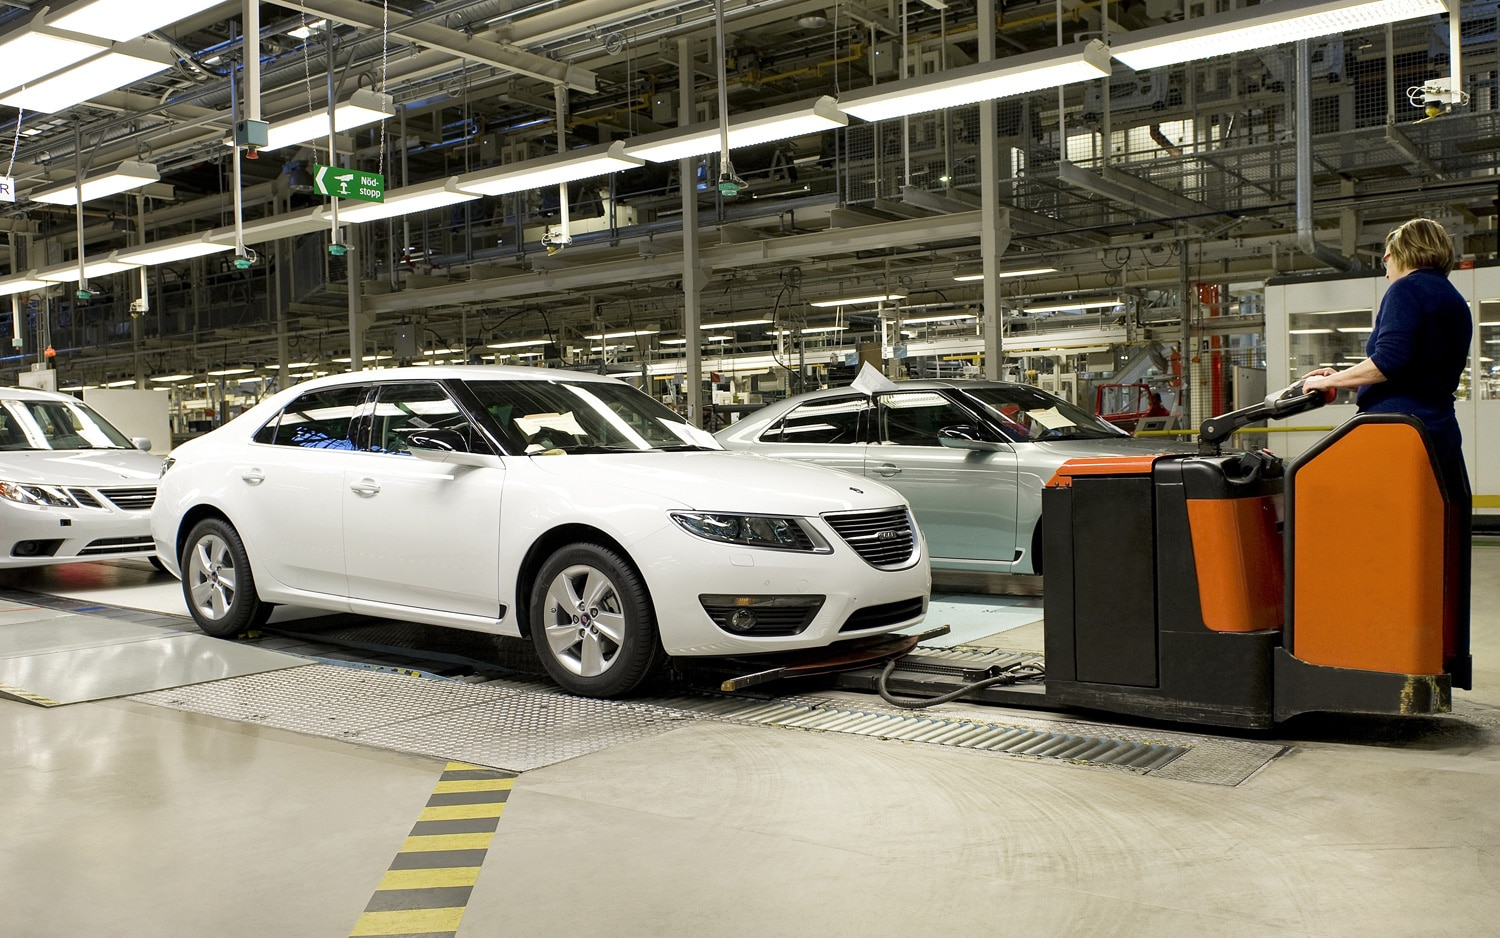 2011 Saab 9 5 Production Line Side View1